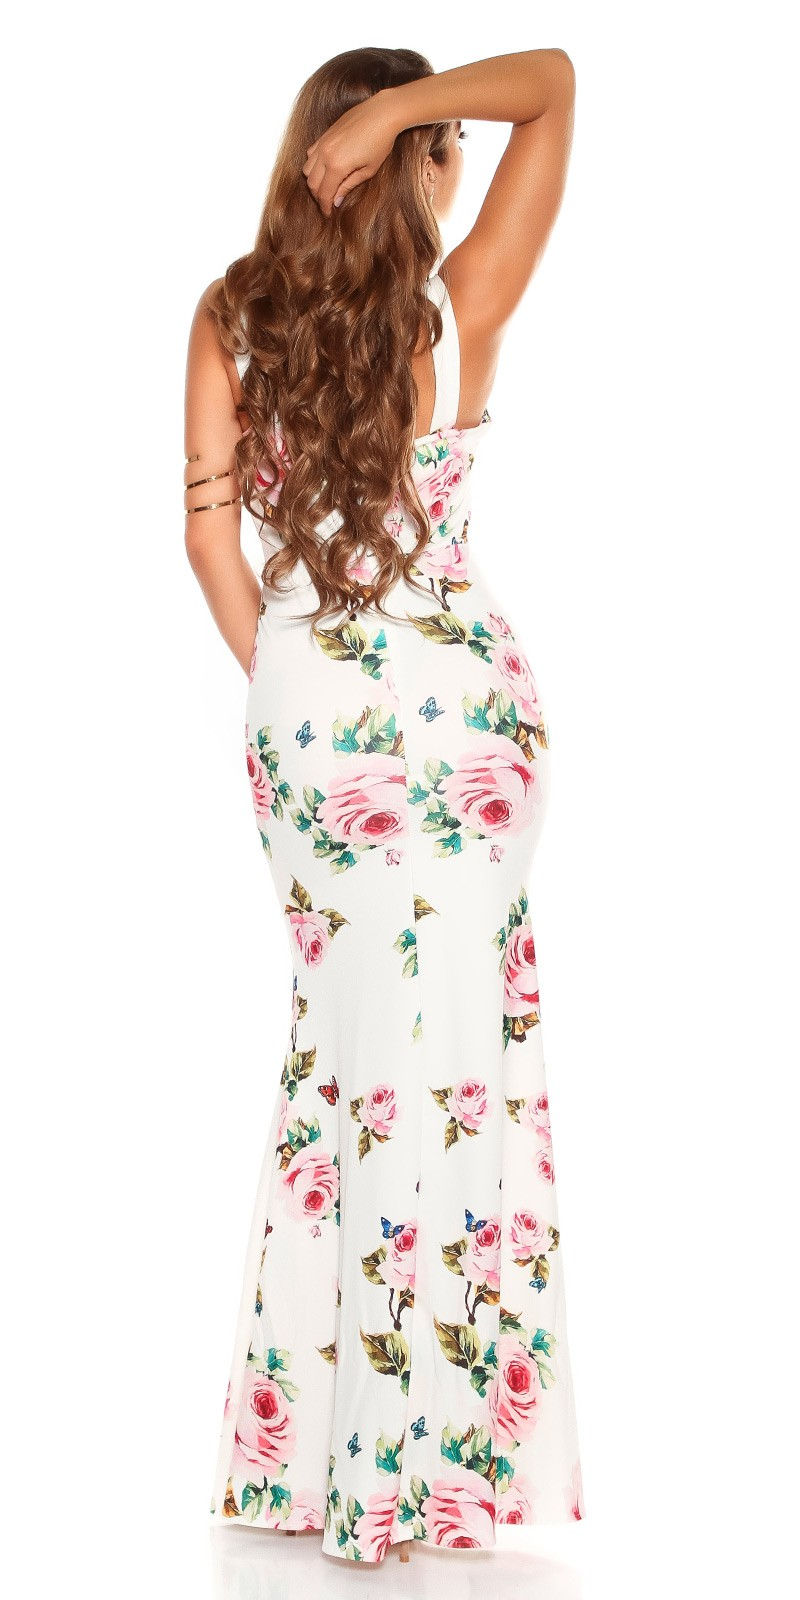 a85904a8288d aaMaxidress with  Flower-Print  Color WHITE Size Einheitsgroesse 0000K2855 WEISS 16